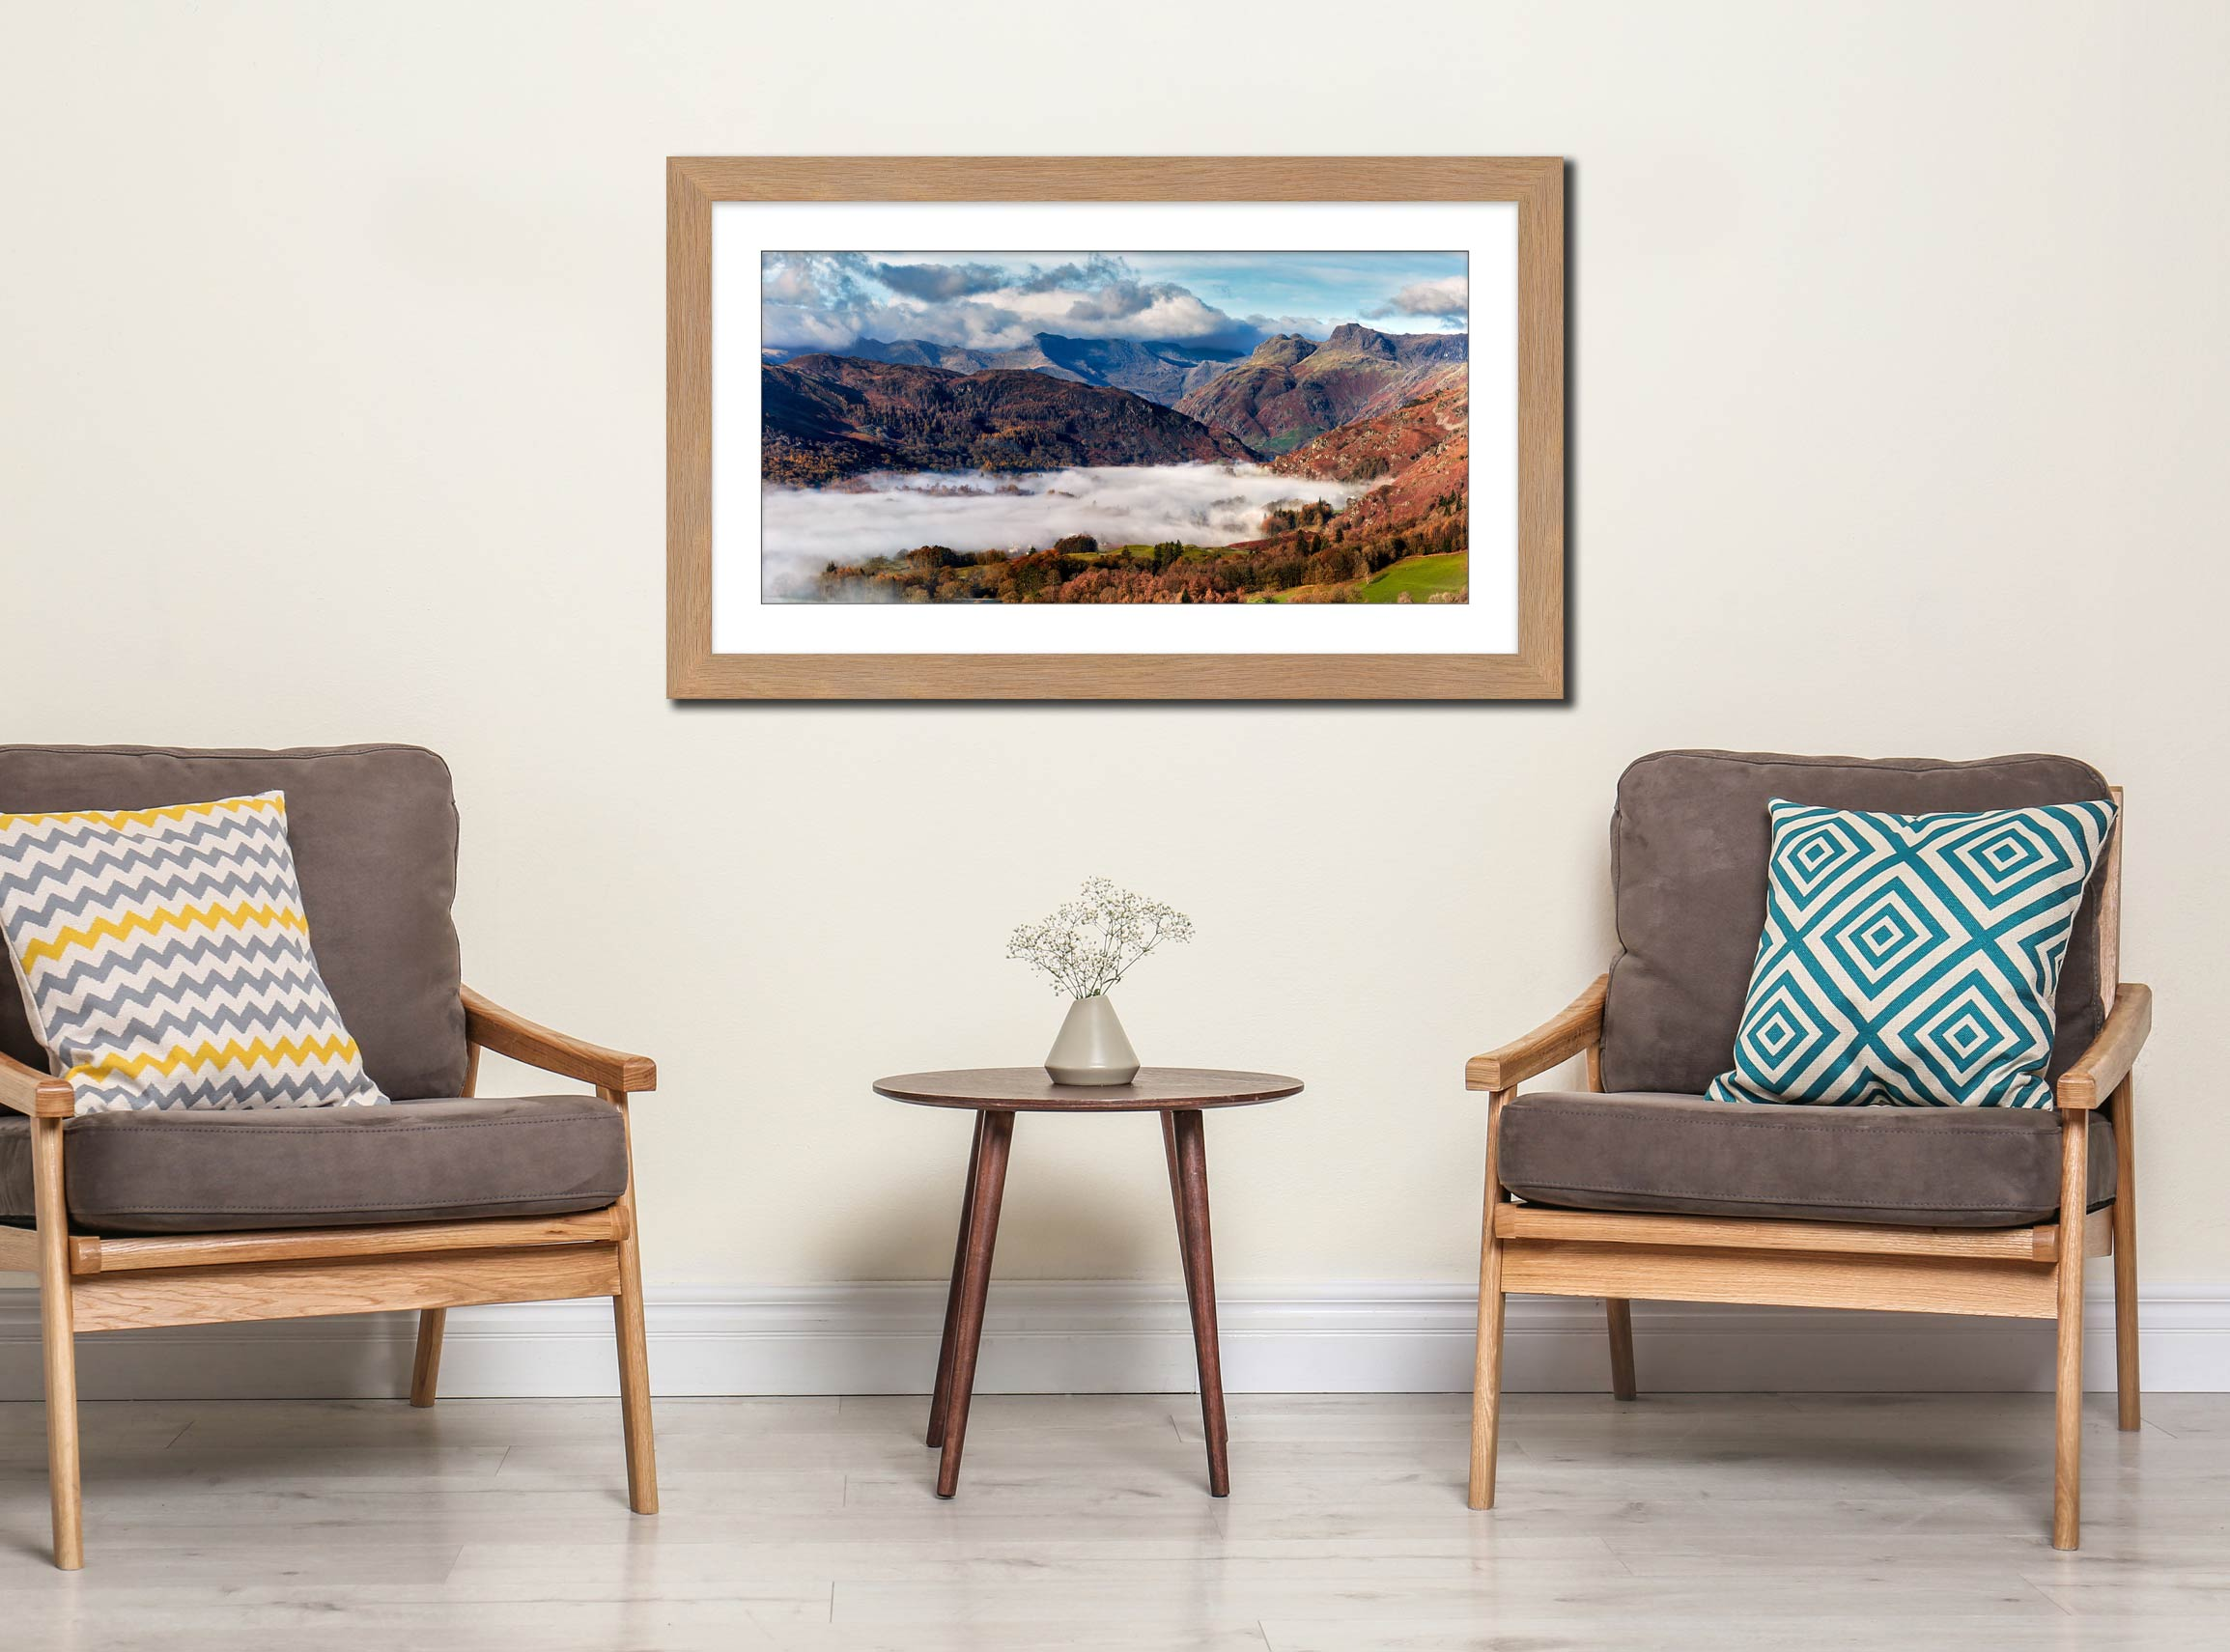 Great Langdale Mountains and Mist - Framed Print with Mount on Wall